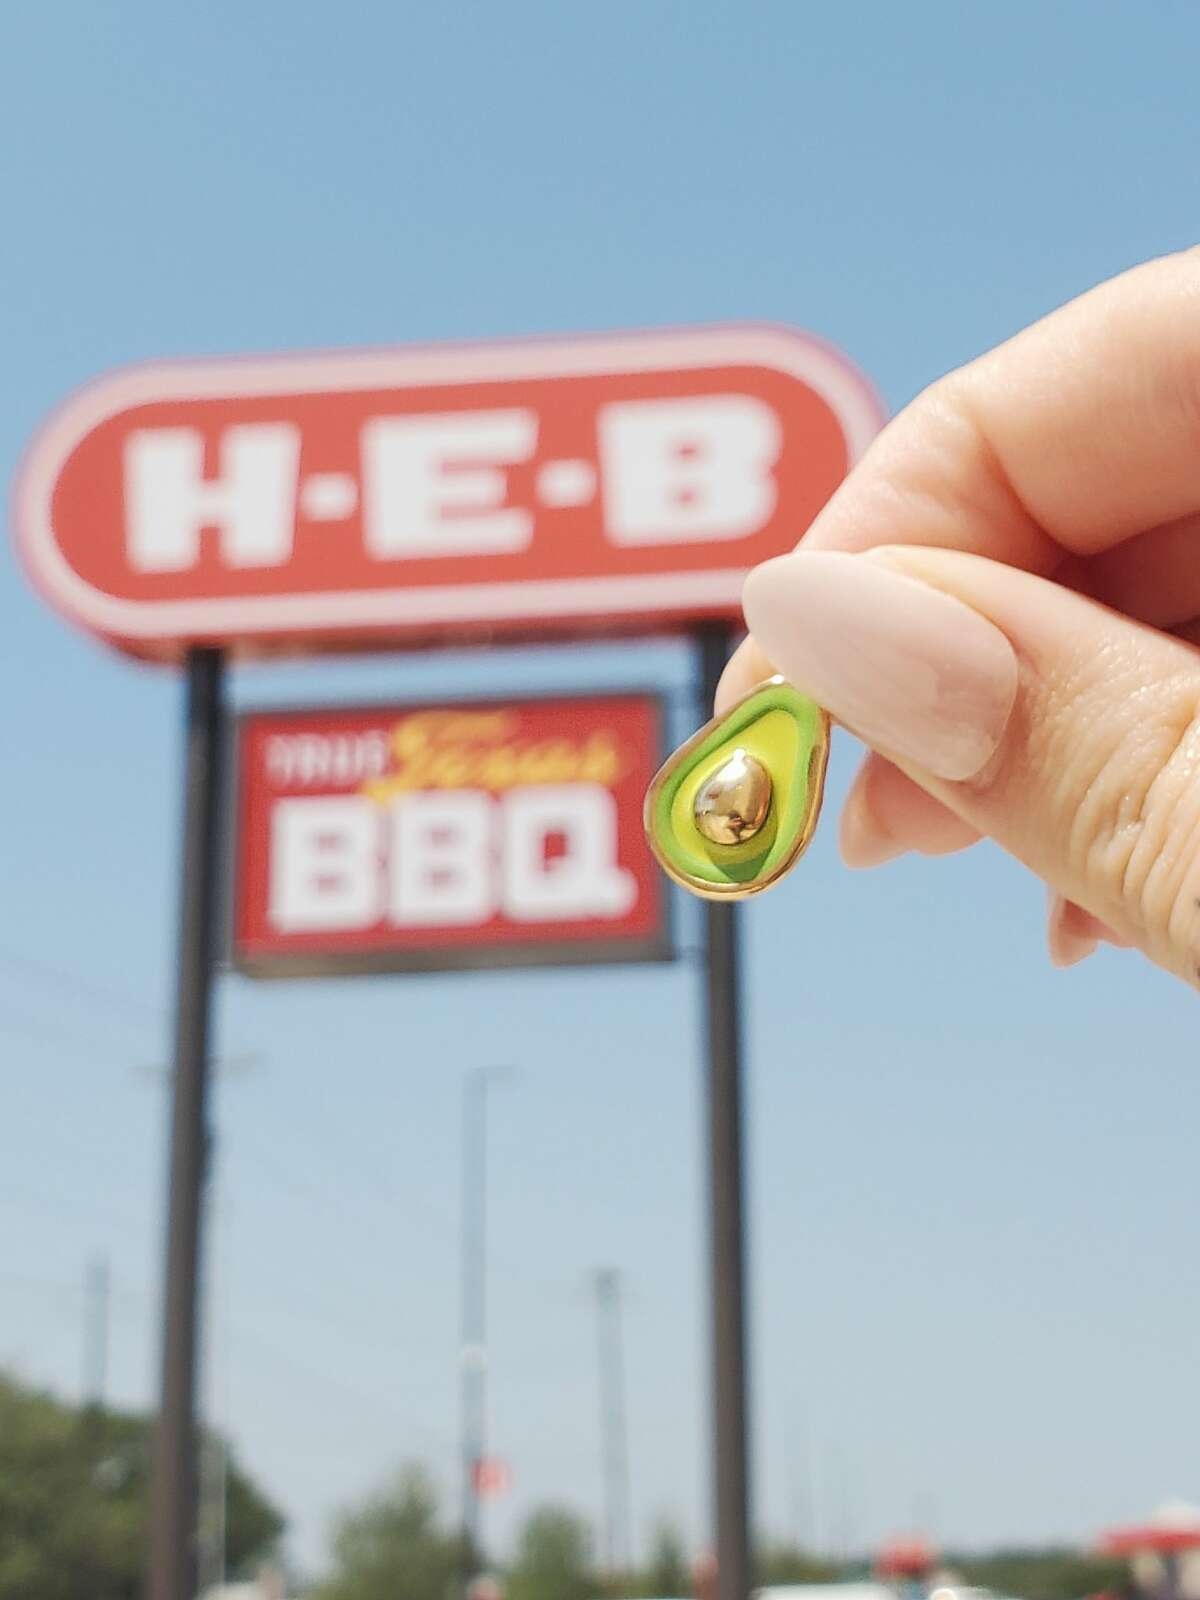 It's an avocado... charm. These are just one of the many charms you can get at the H-E-B locations.